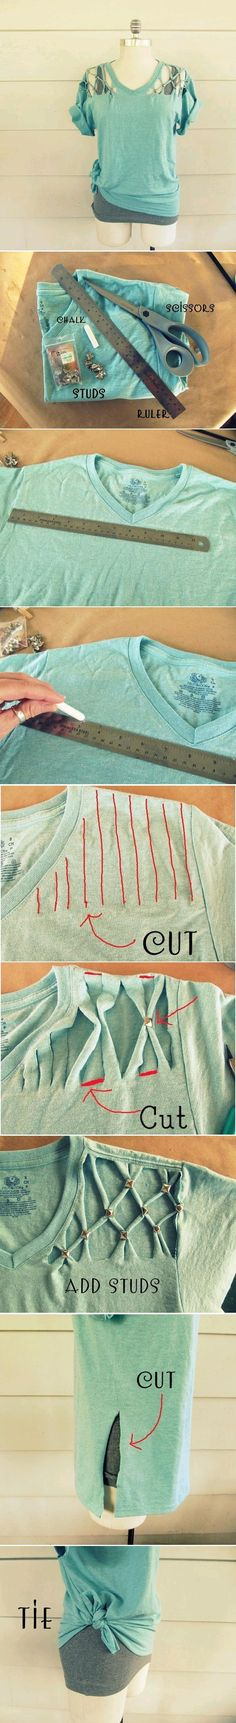 Give your shirt a new look                                                                                                                                                                                 Más